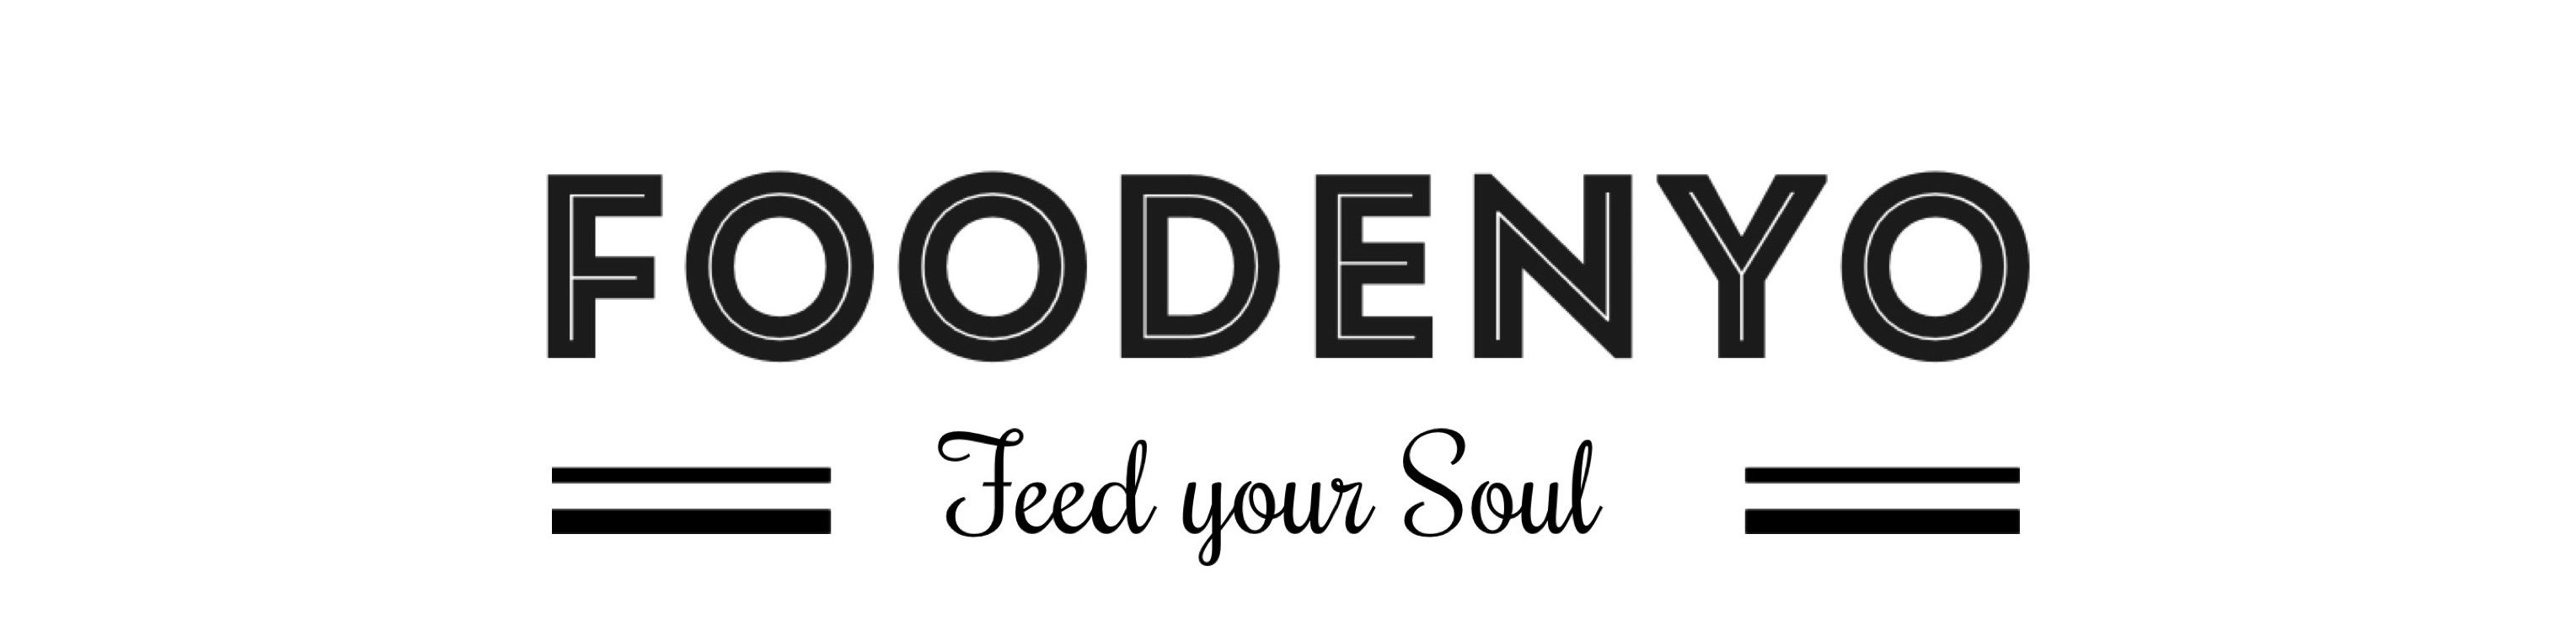 Foodenyo | Feed your soul